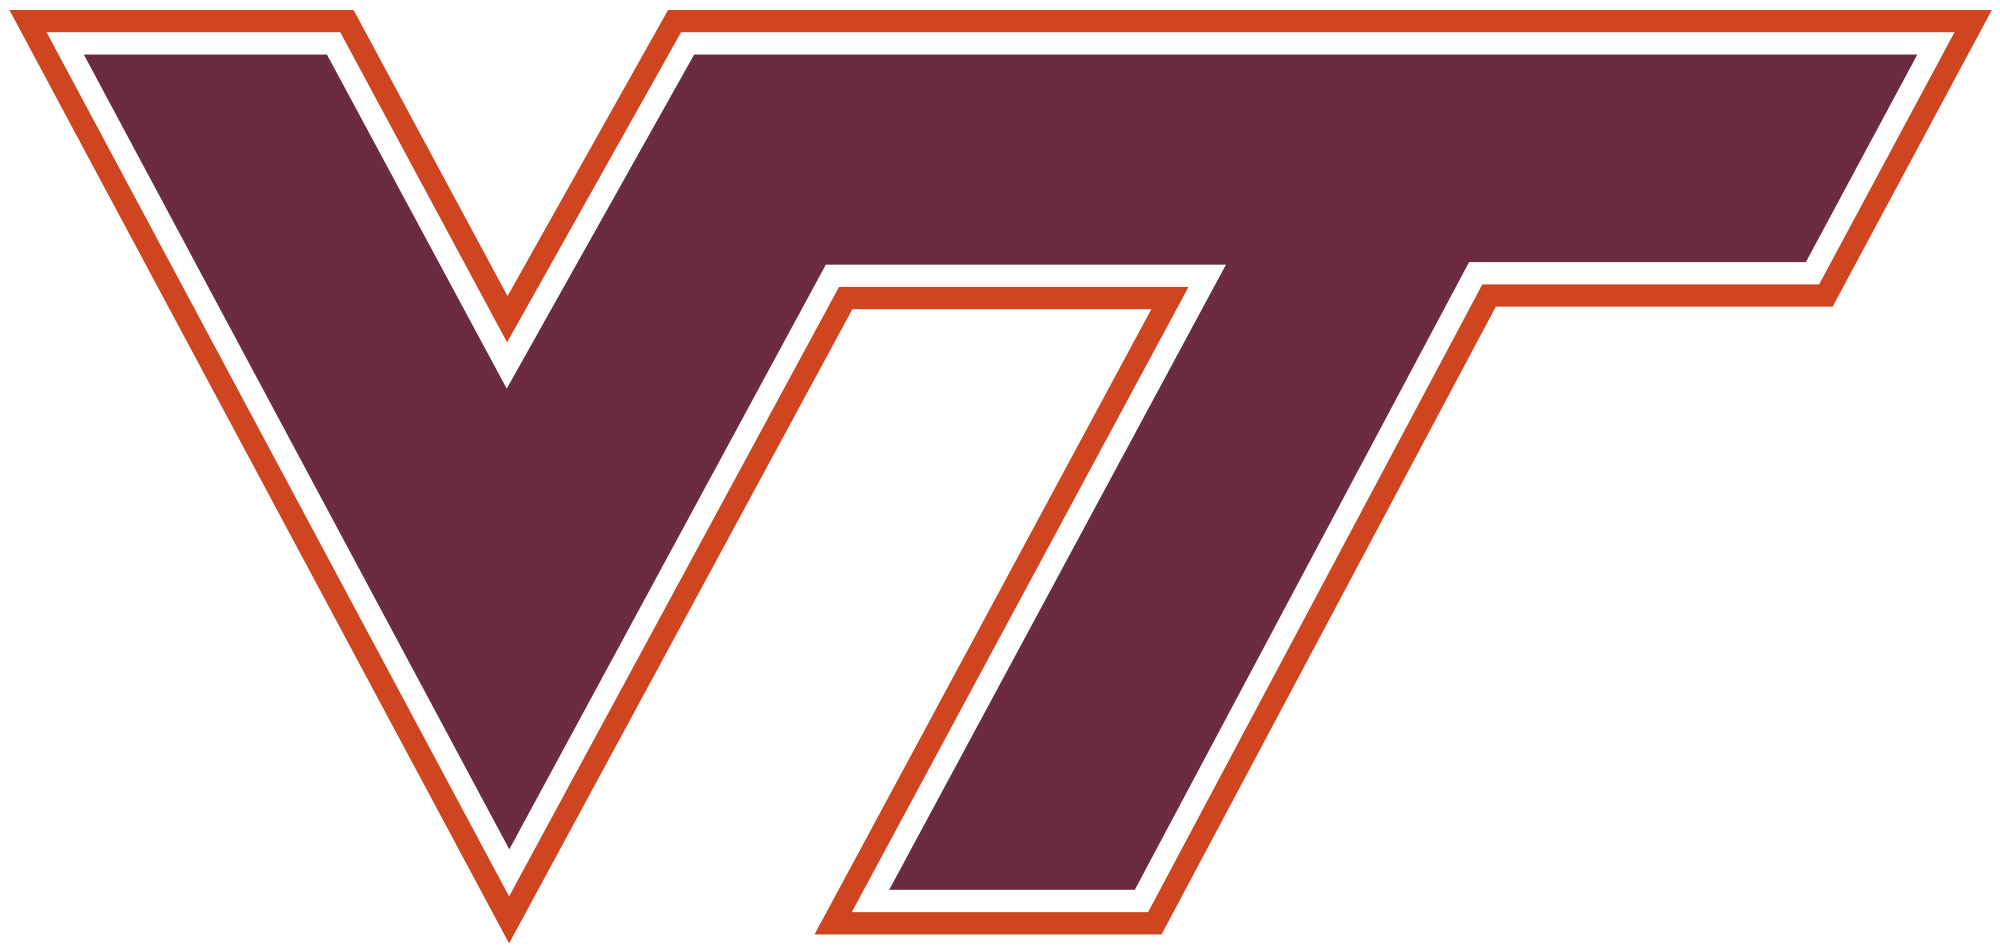 Edward Railey, Virginia Tech Hokie Alumni